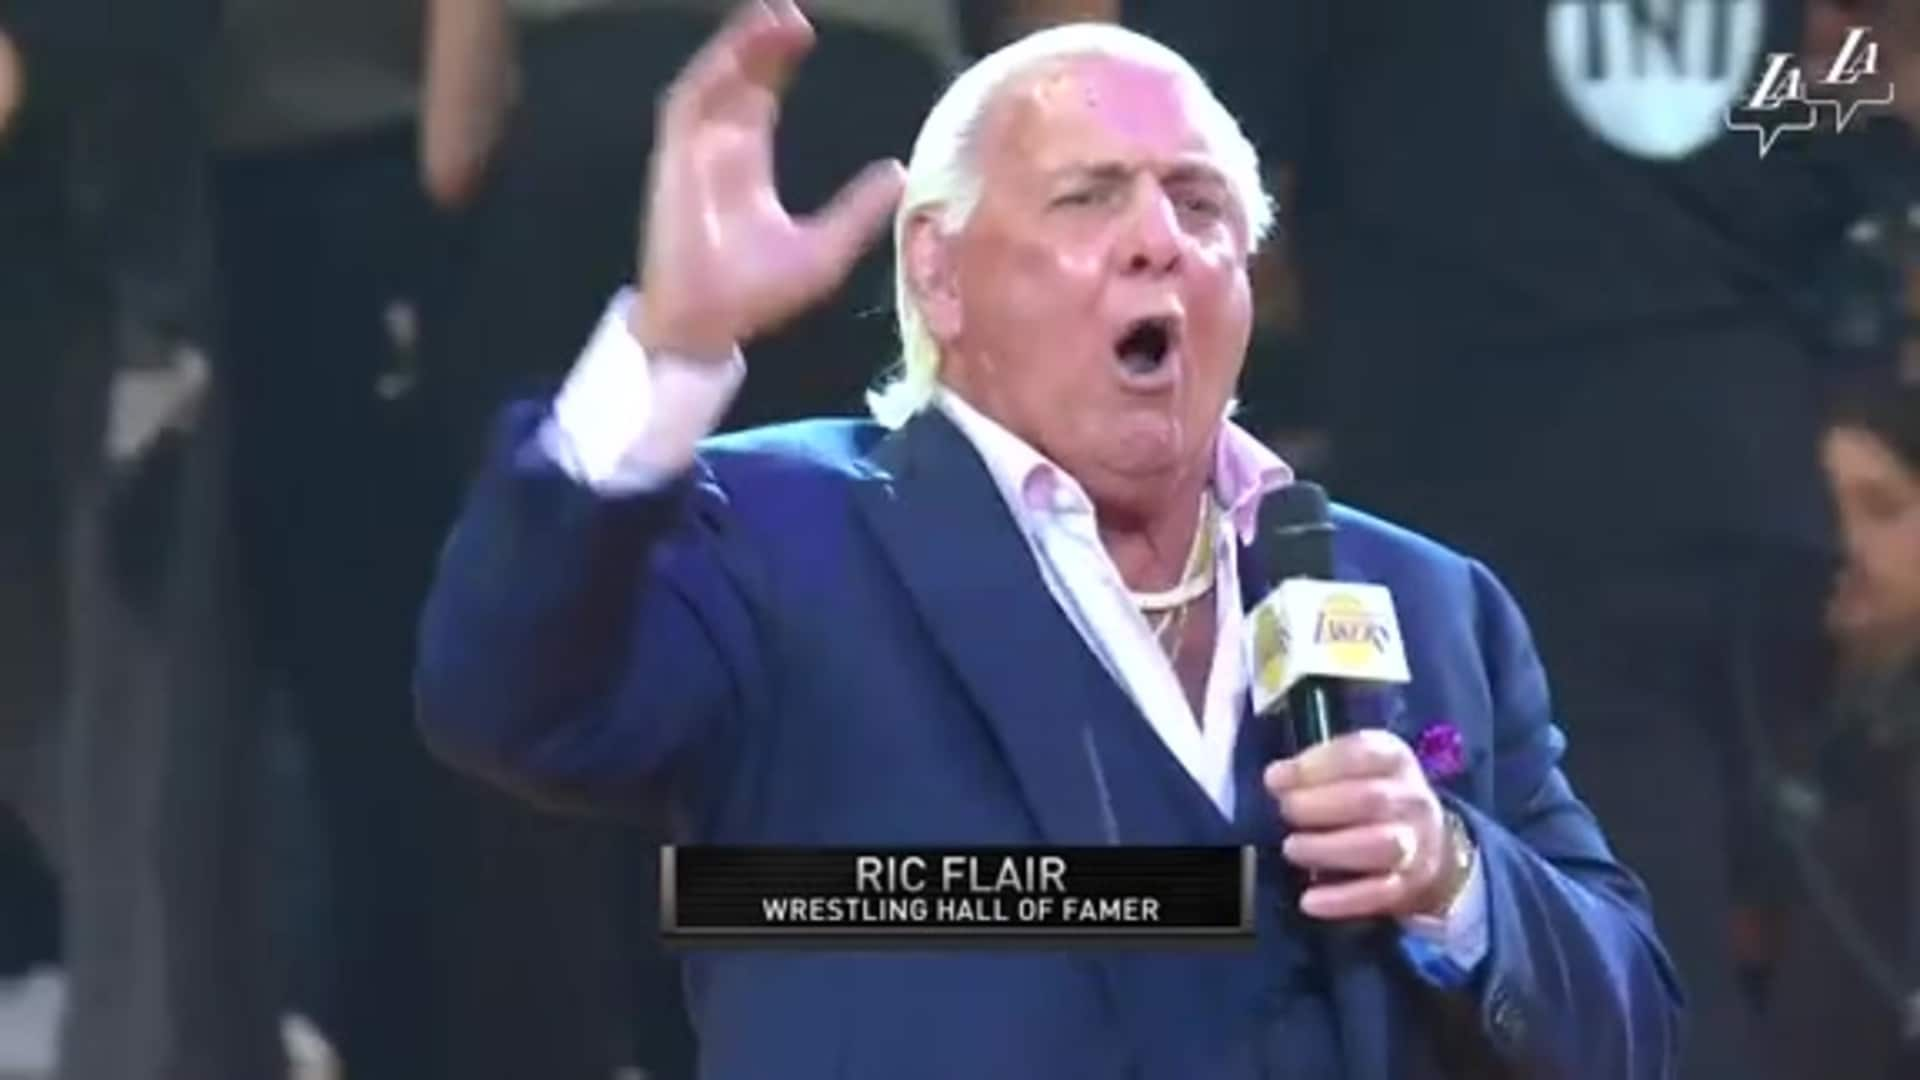 Ric Flair in the house